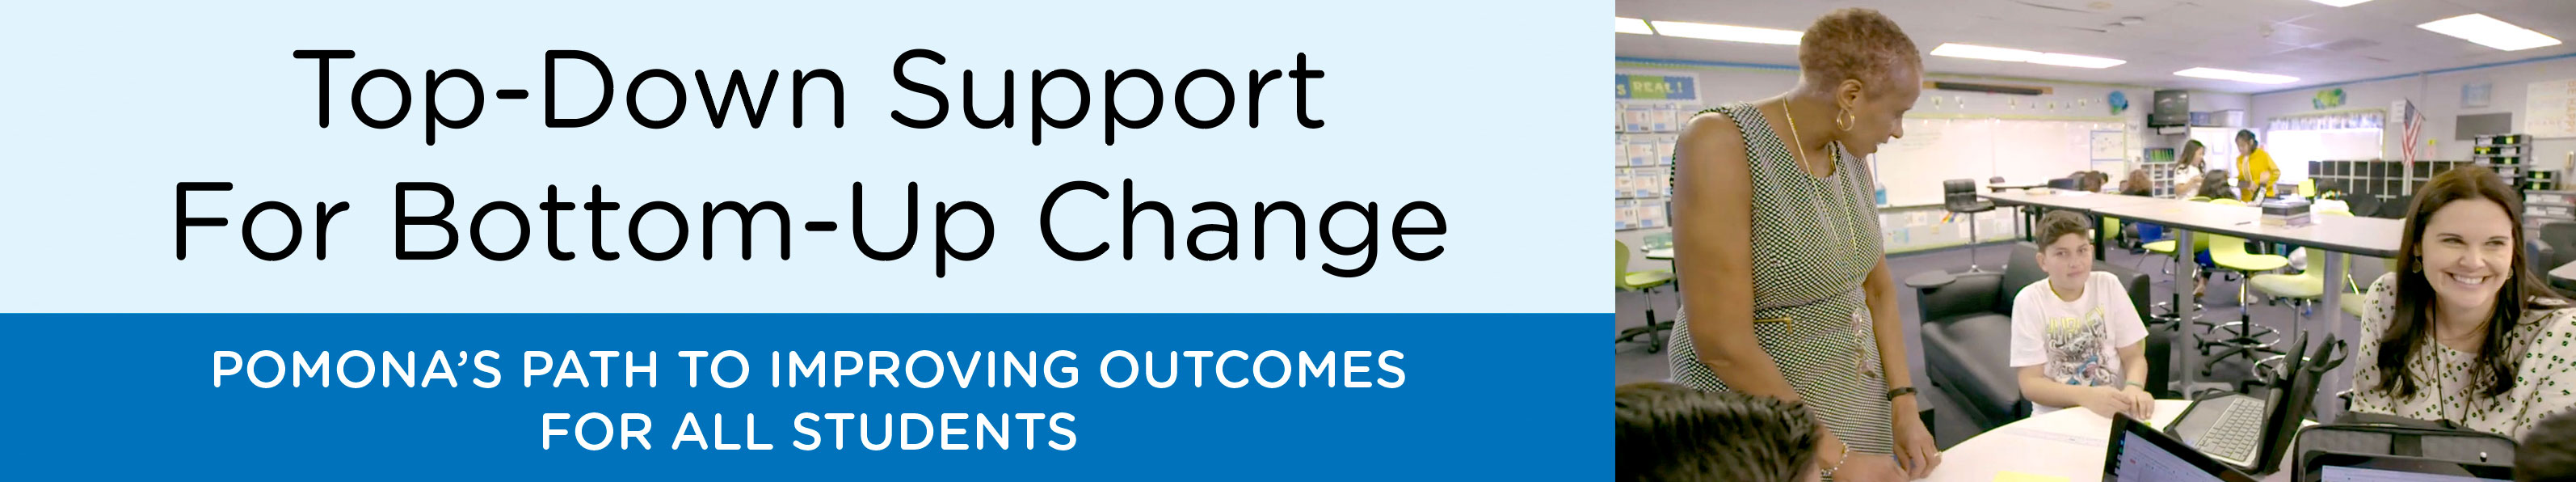 Top-Down Support For Bottom-Up Change - Pomonas Path to Improving Outcomes for All Students